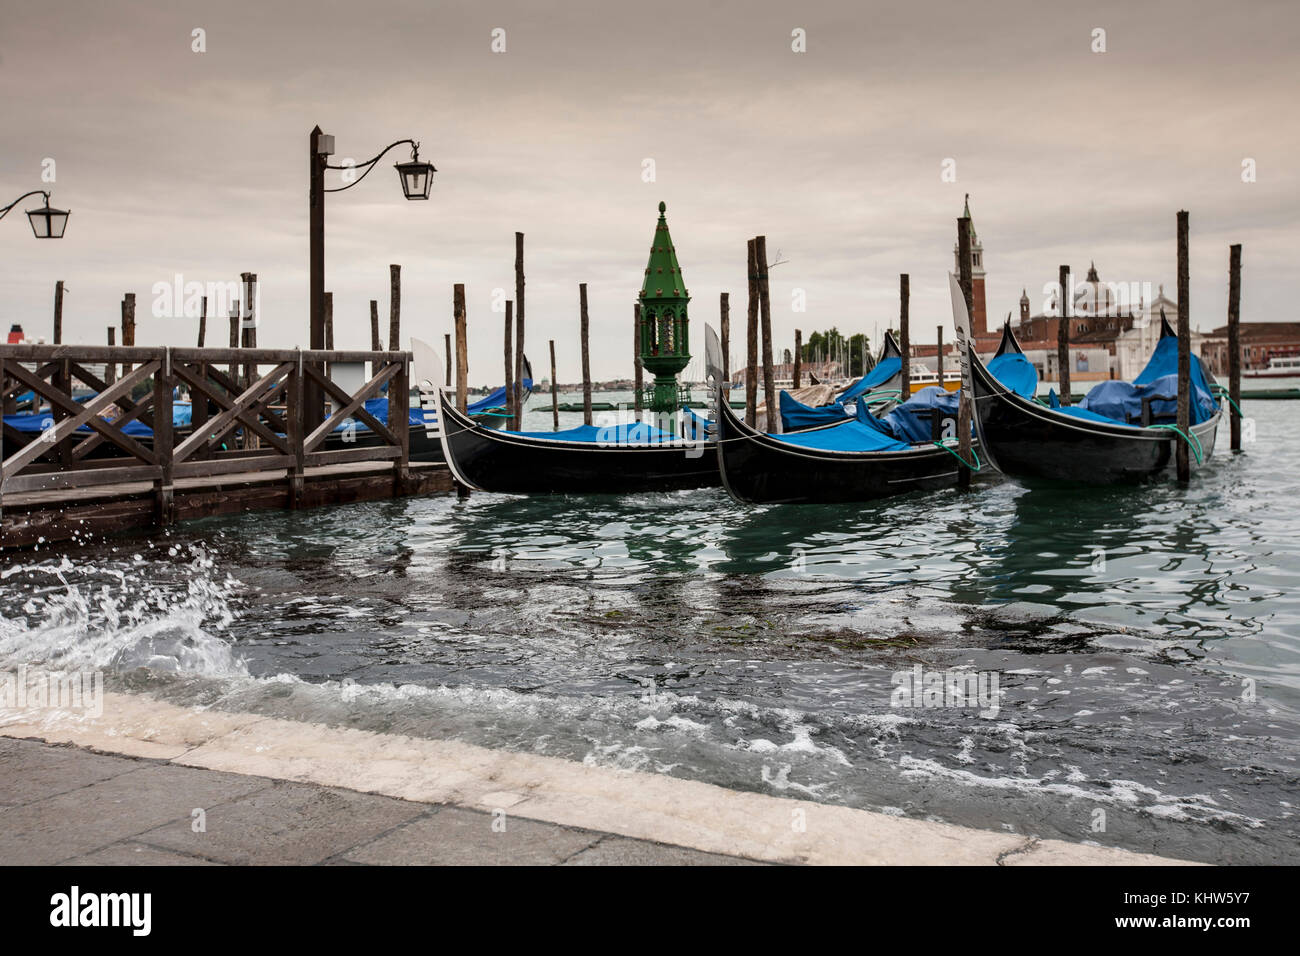 High water rising up to St Mark's Square, Venice, Italy - Stock Image